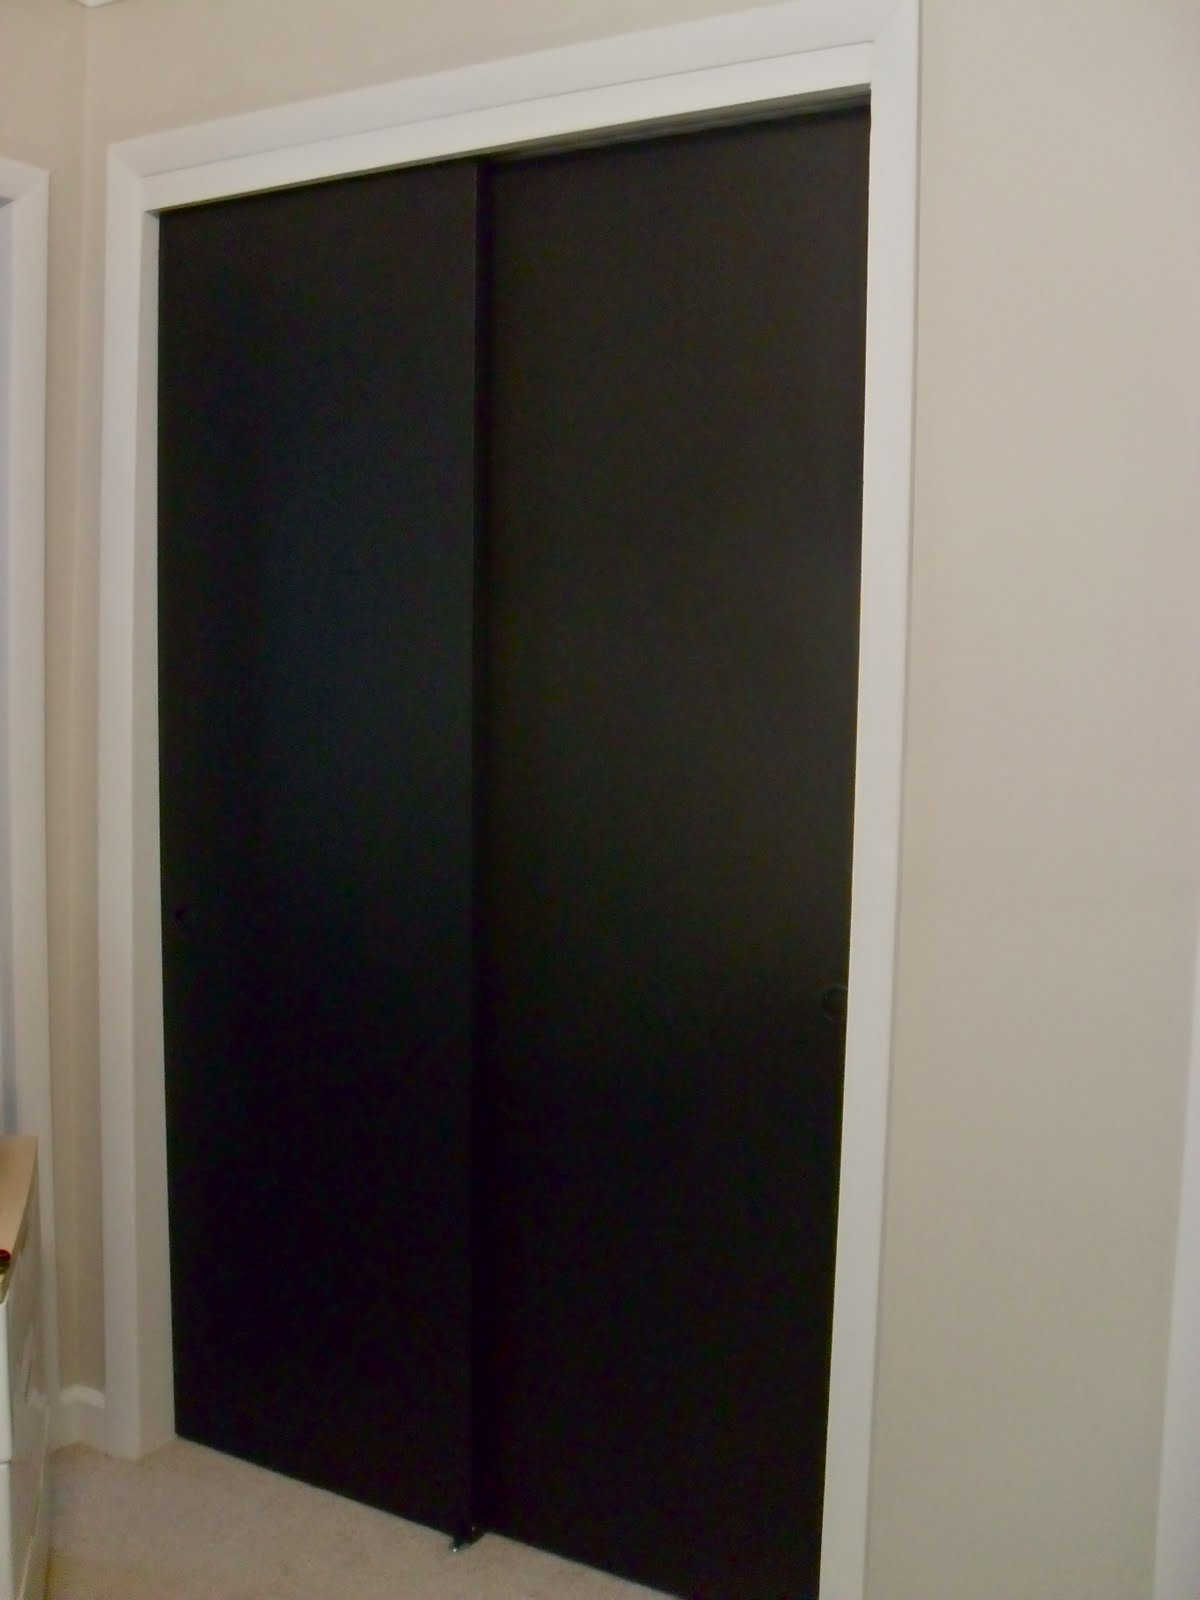 Chalkboard Doors - The Finale & The Remodeled Life: Chalkboard Doors - The Finale